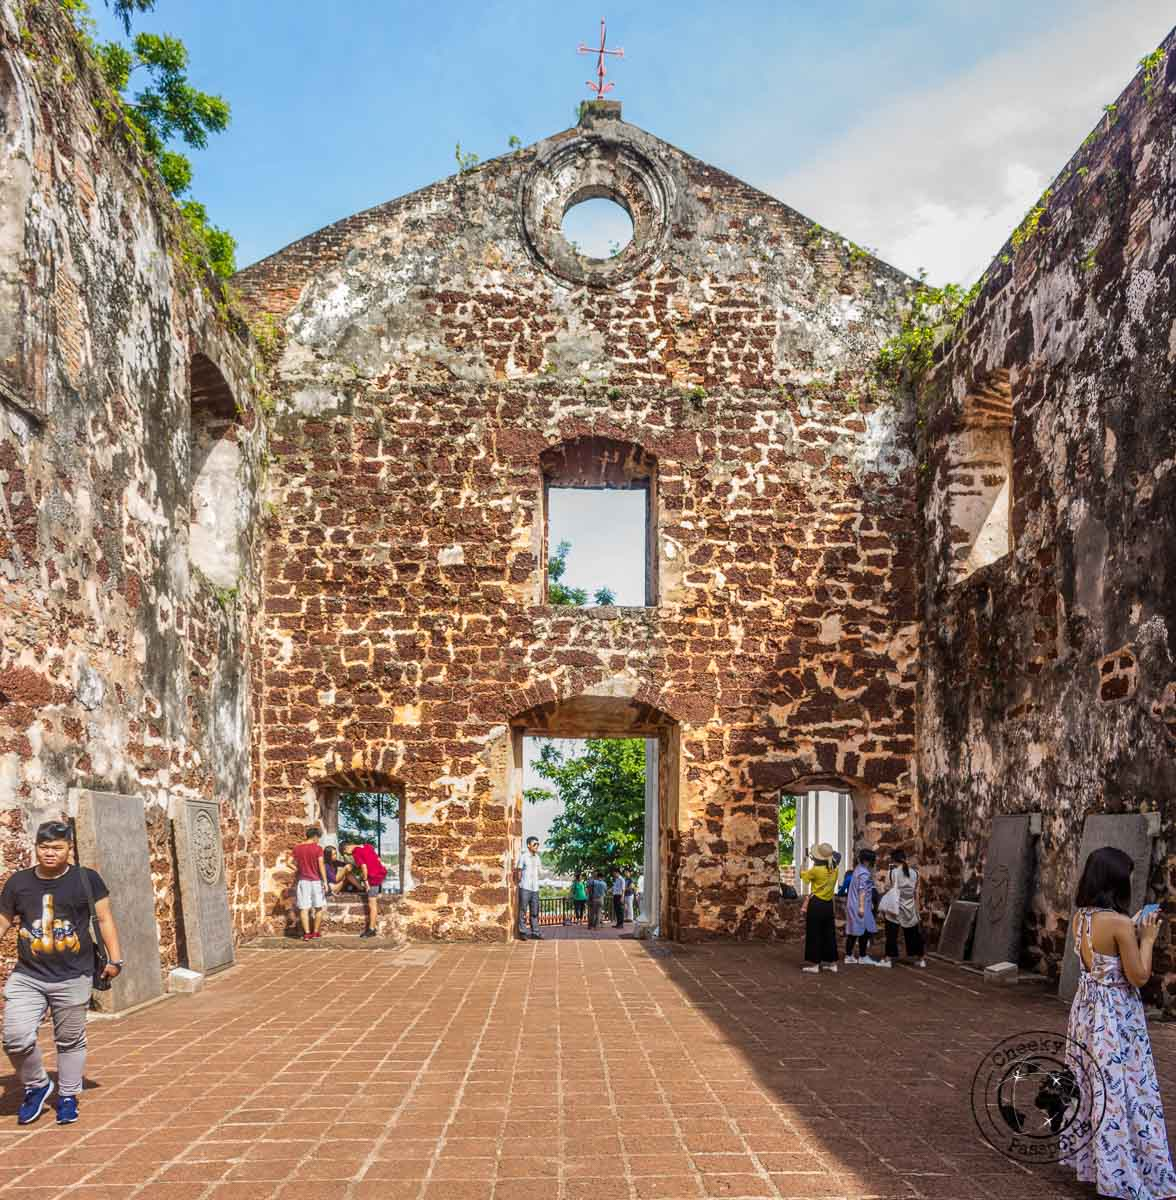 St. Paul's Church - Things to do in Melaka